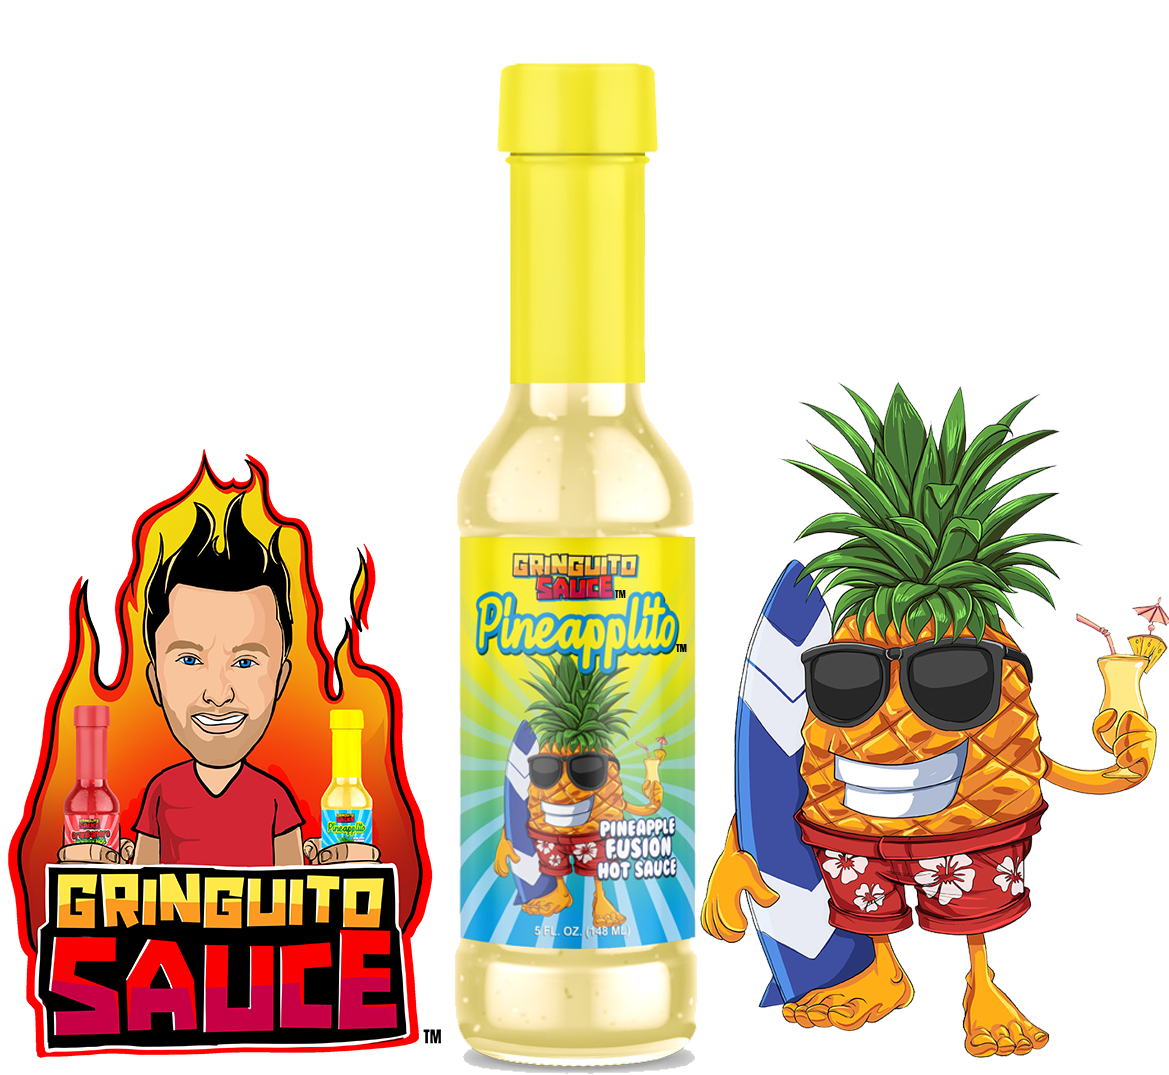 Pineapplito Hot Sauce